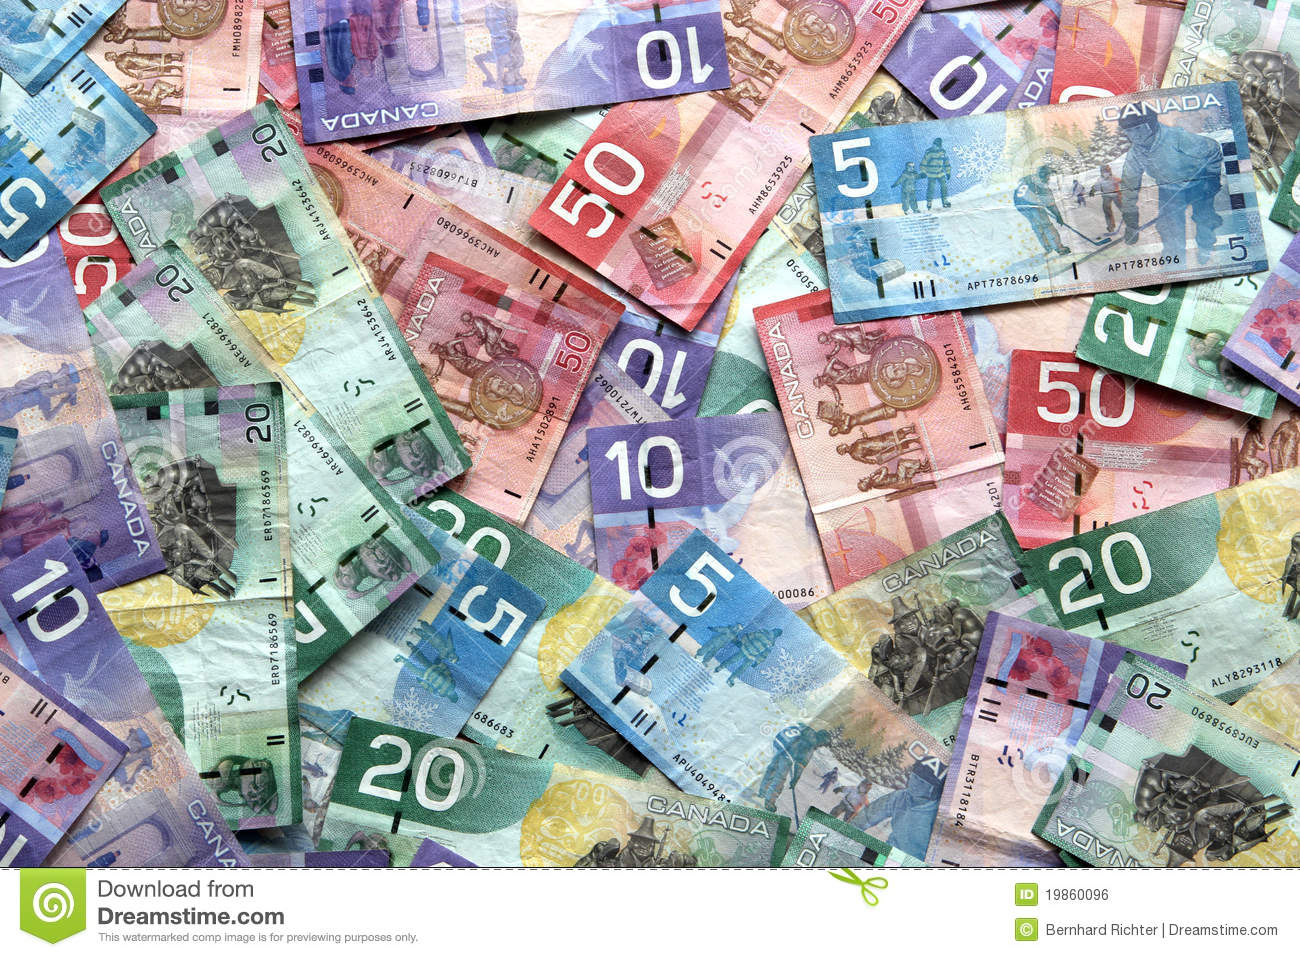 Canadian Dollar Bills Royalty Free Stock Image - Image: 19860096